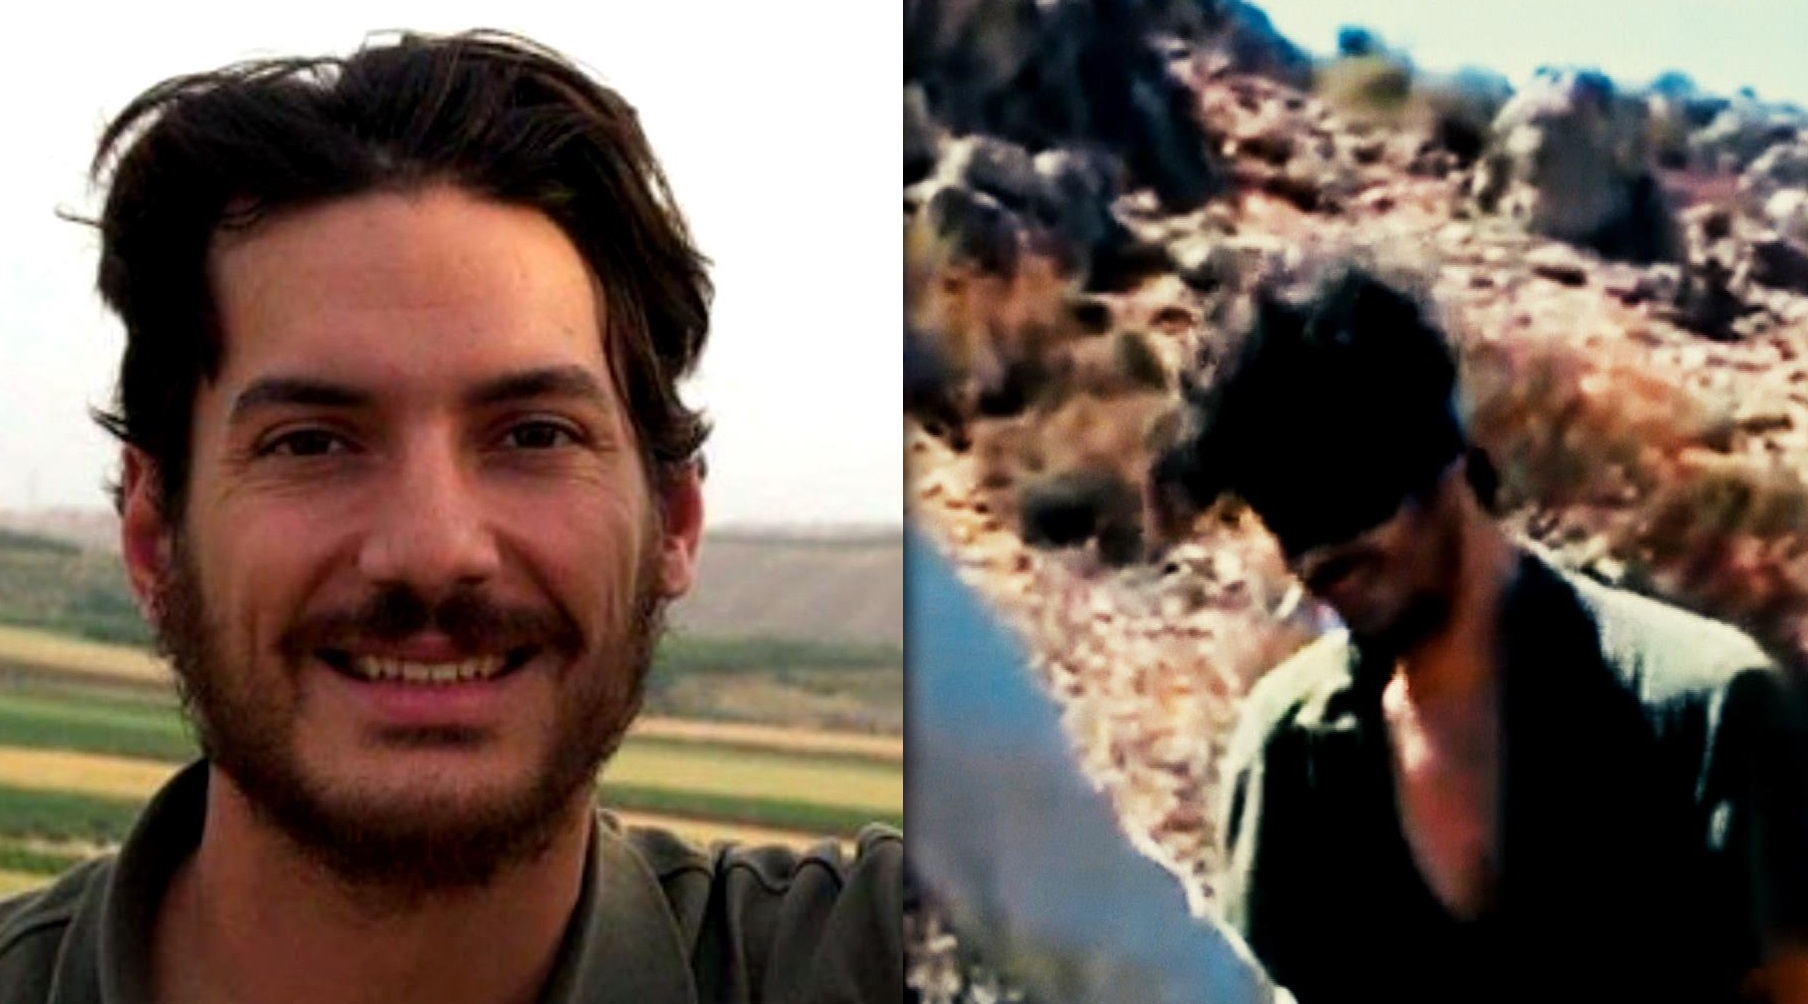 U.S. Diplomat Says Washington Could Soften Its Stand On Assad, If Missing Journalist Is Released